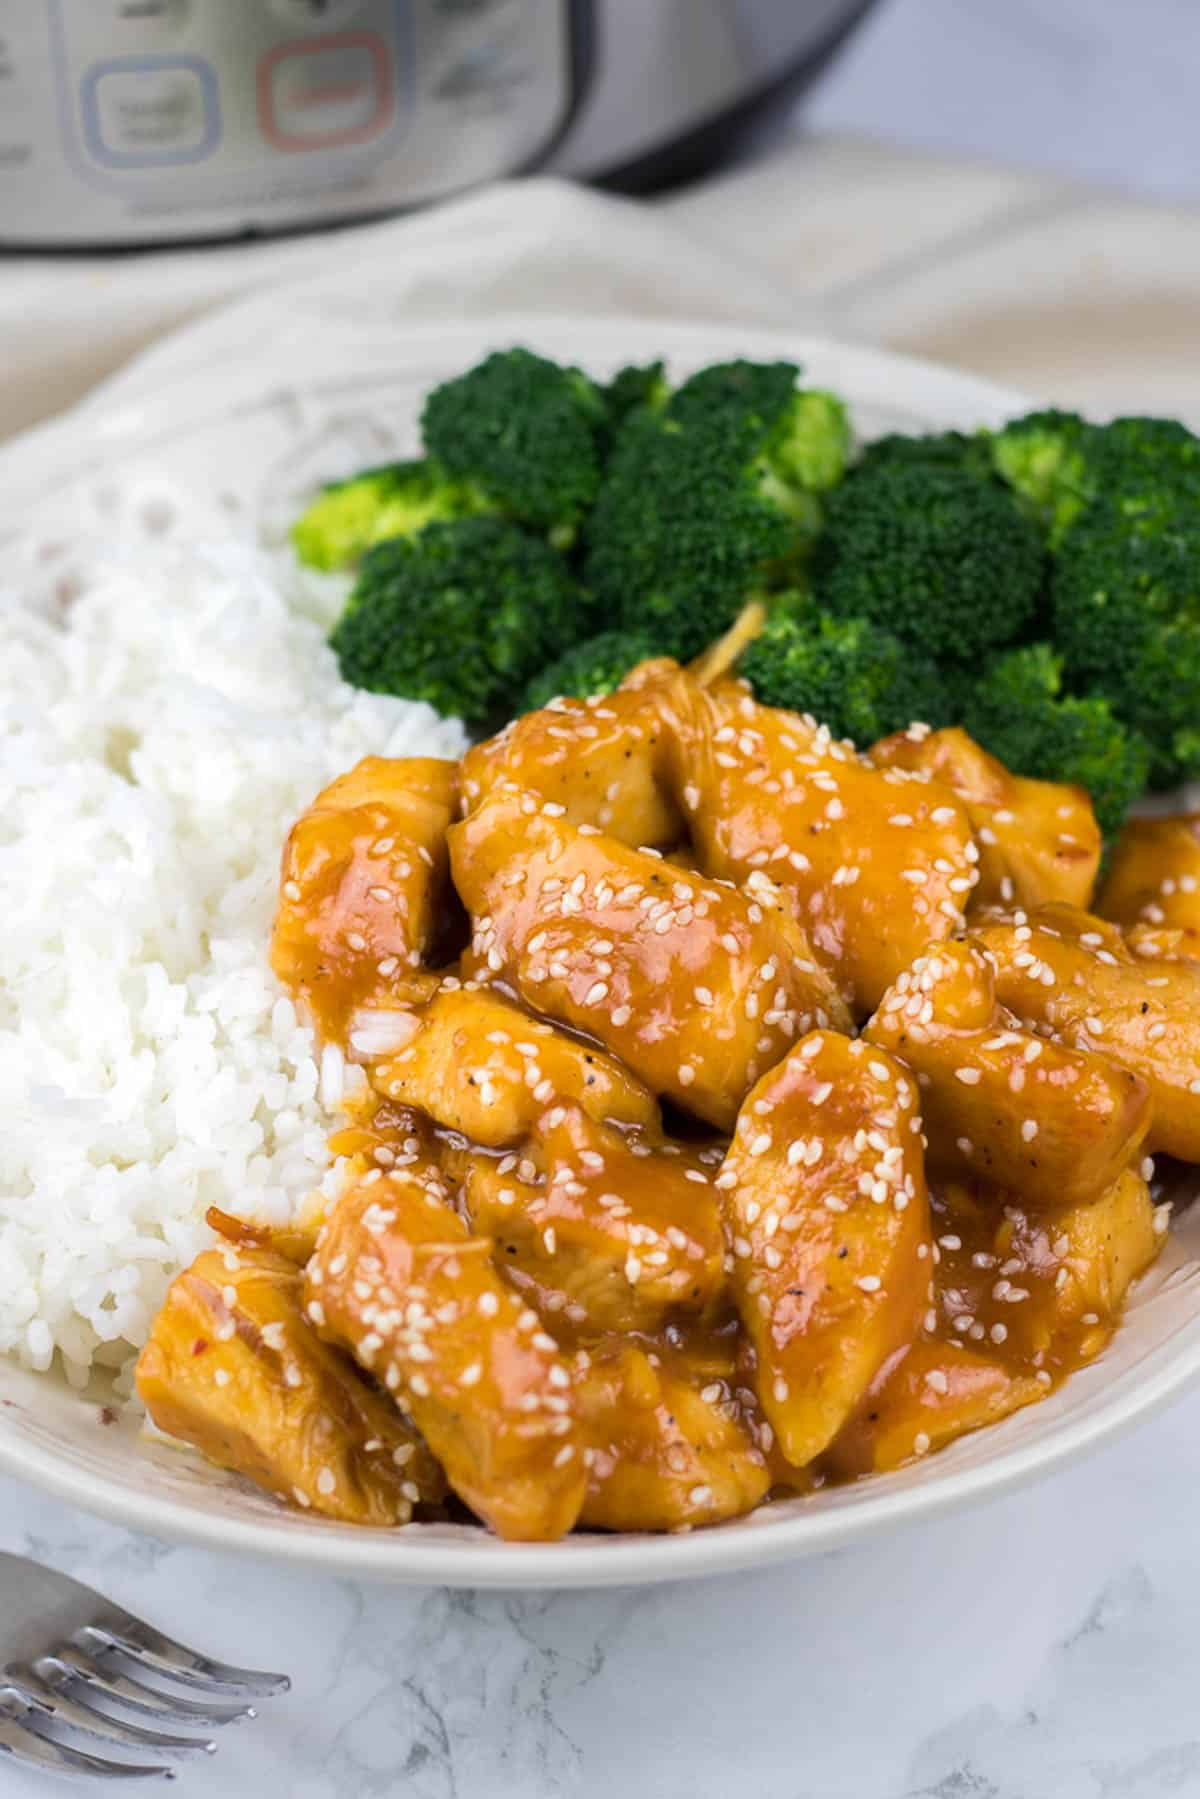 Orange Chicken served with rice and broccoli on a white plate.